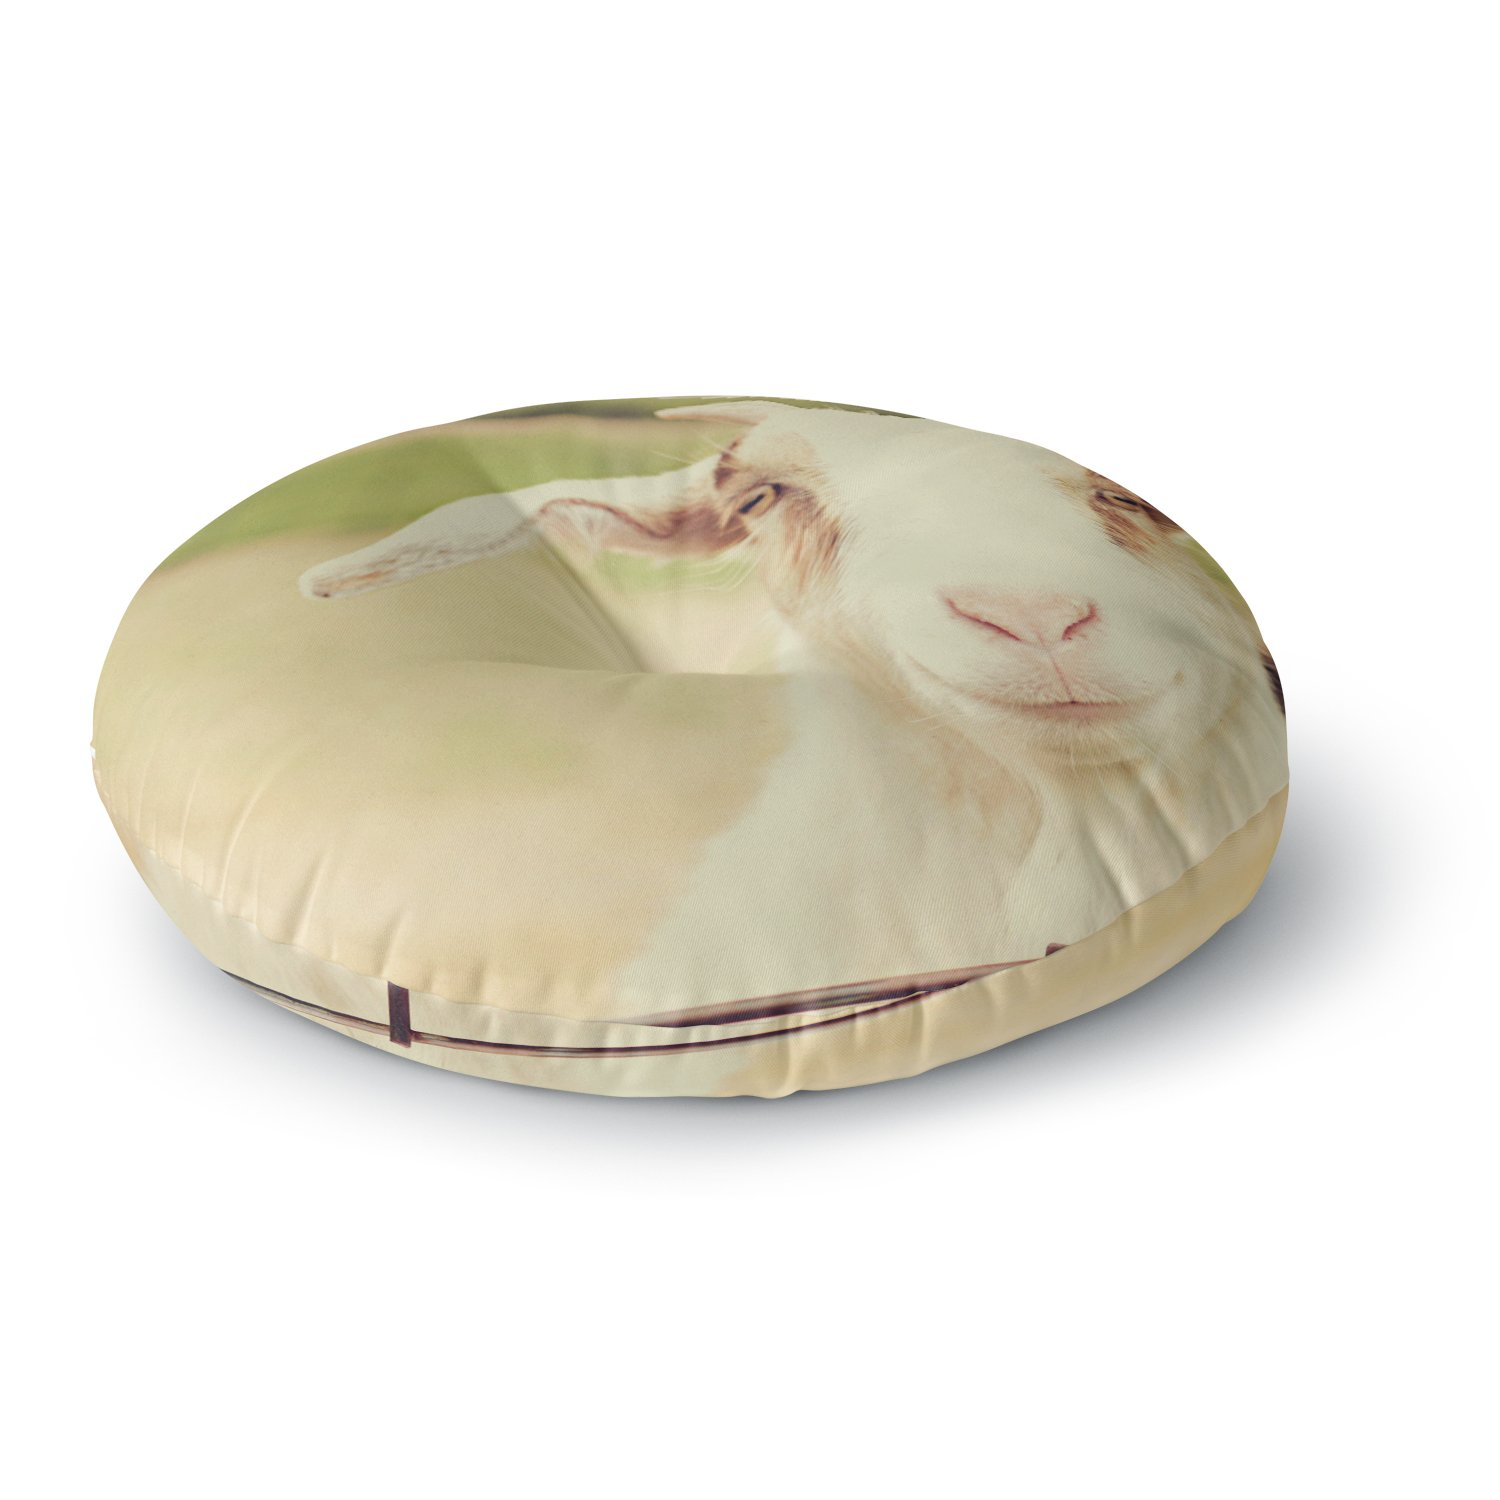 KESS InHouse Angie Turner Happy Goat Smiling Animal Round Floor Pillow, 26''